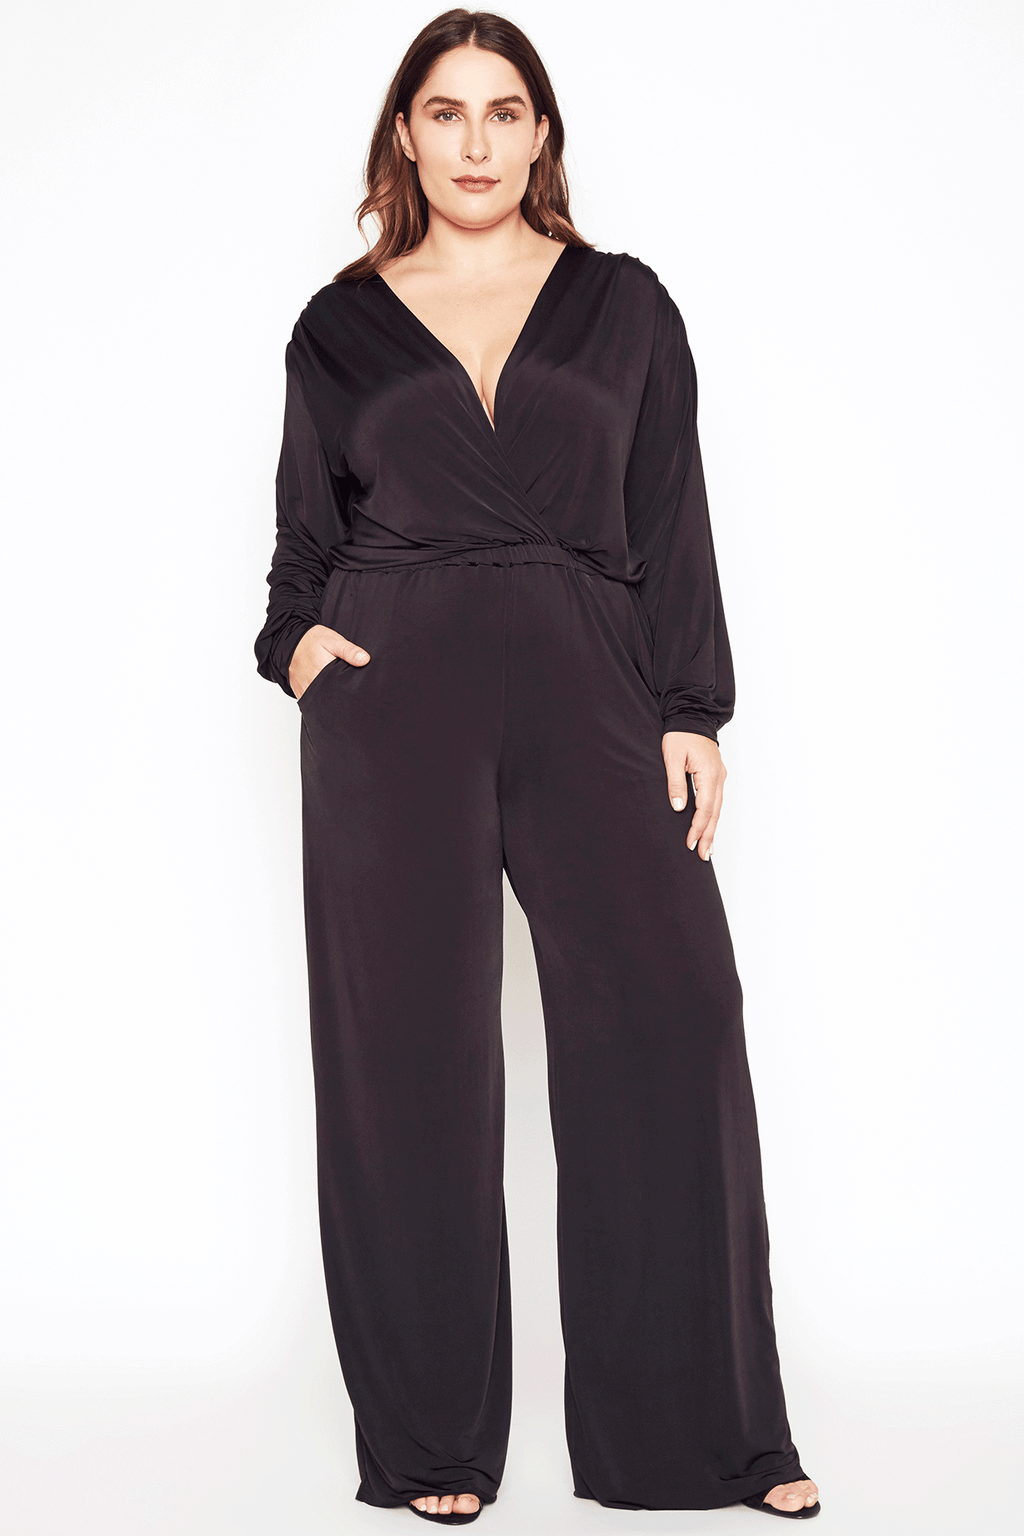 Black Jumpsuit - Long Sleeve